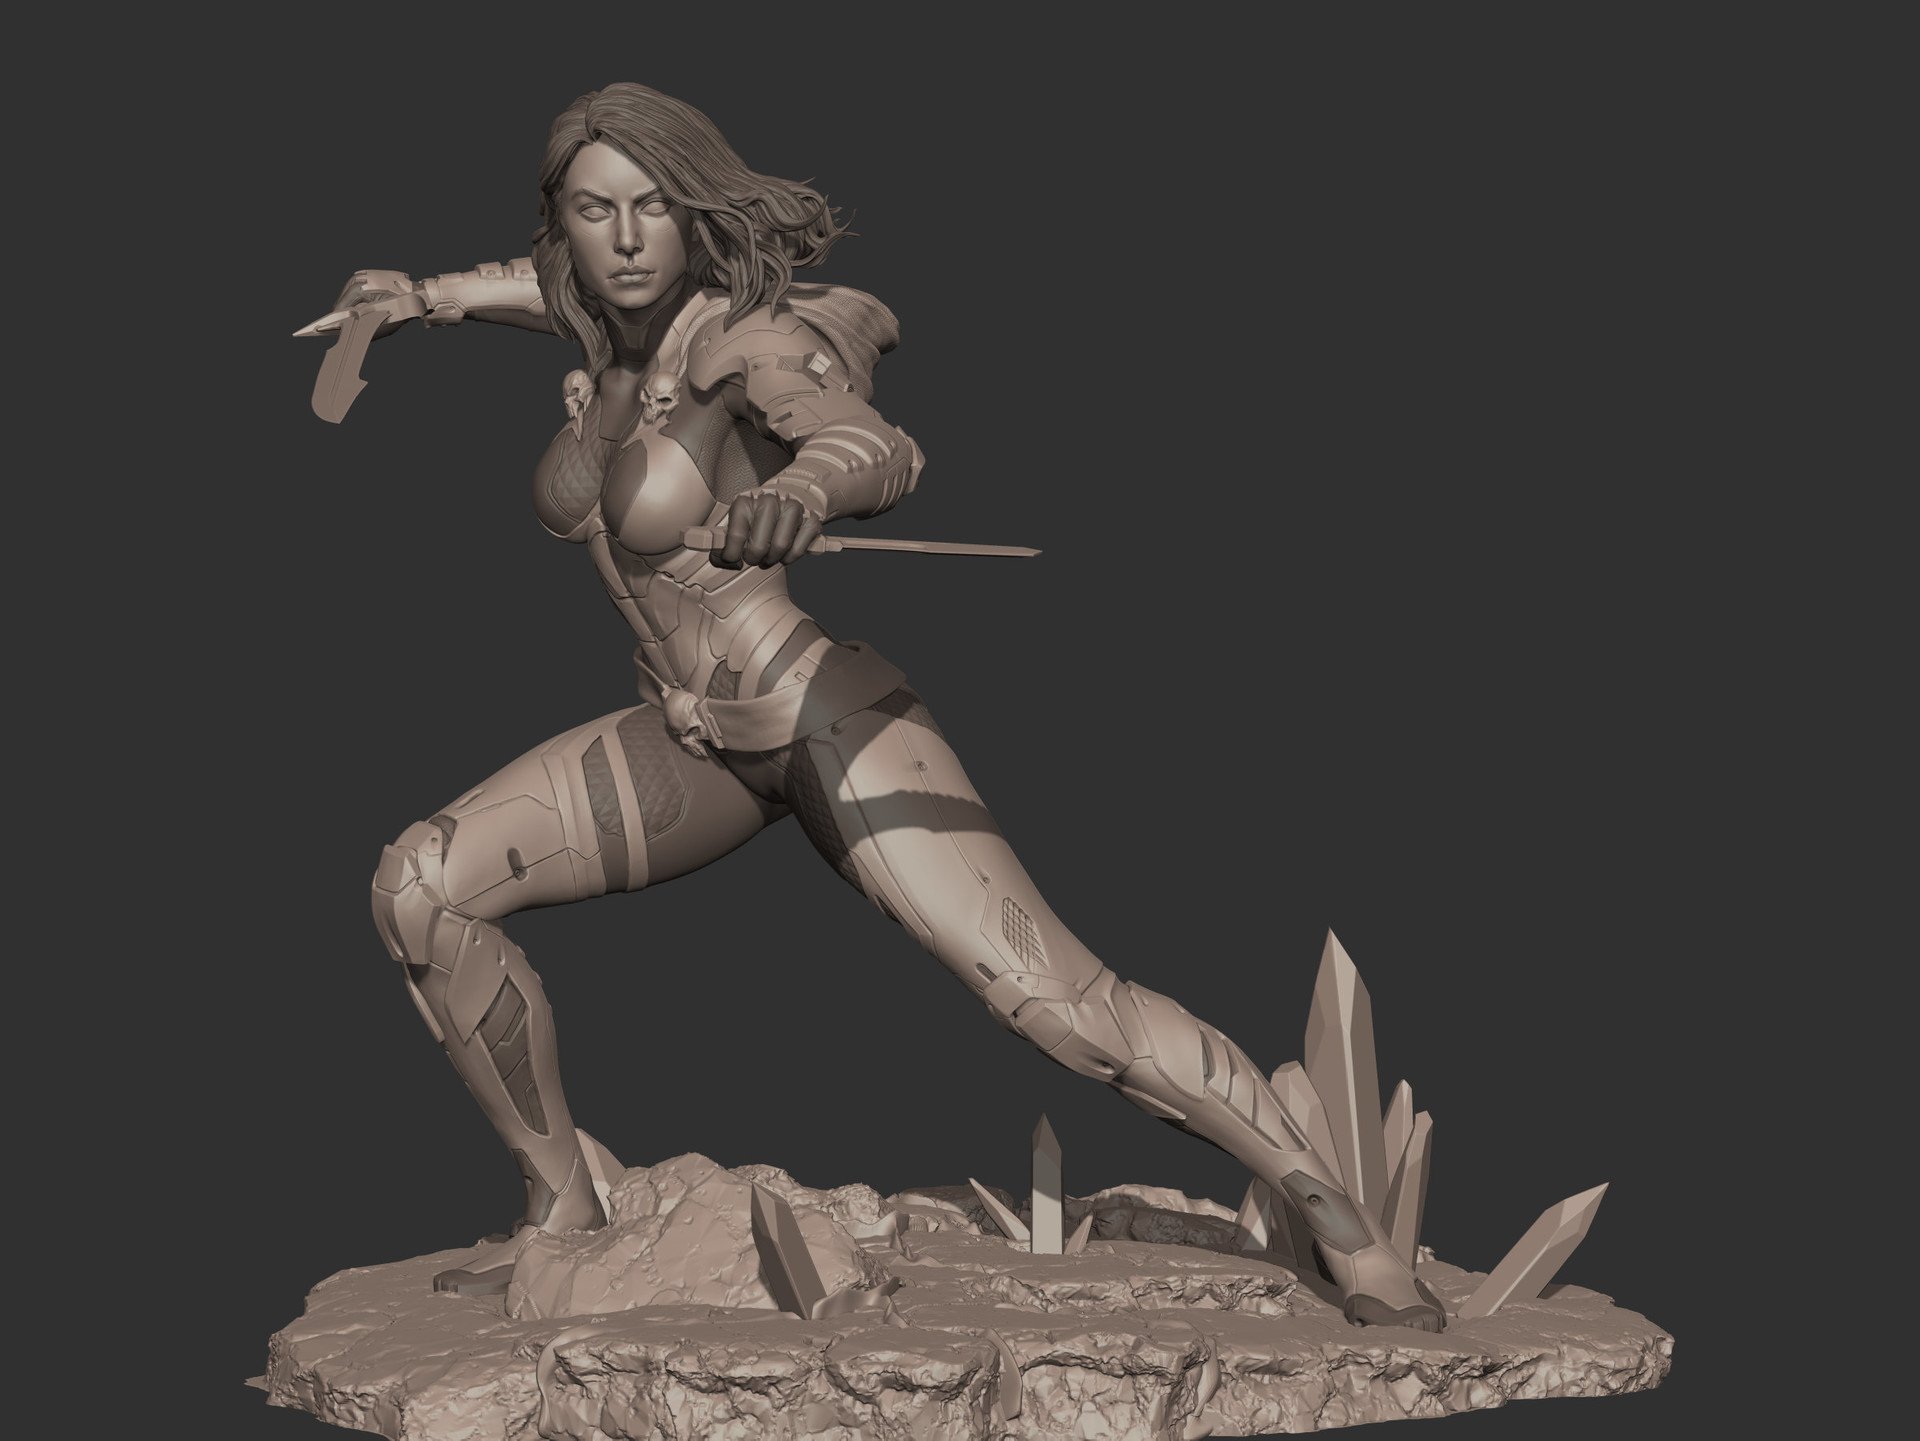 David giraud zbrush document5 2